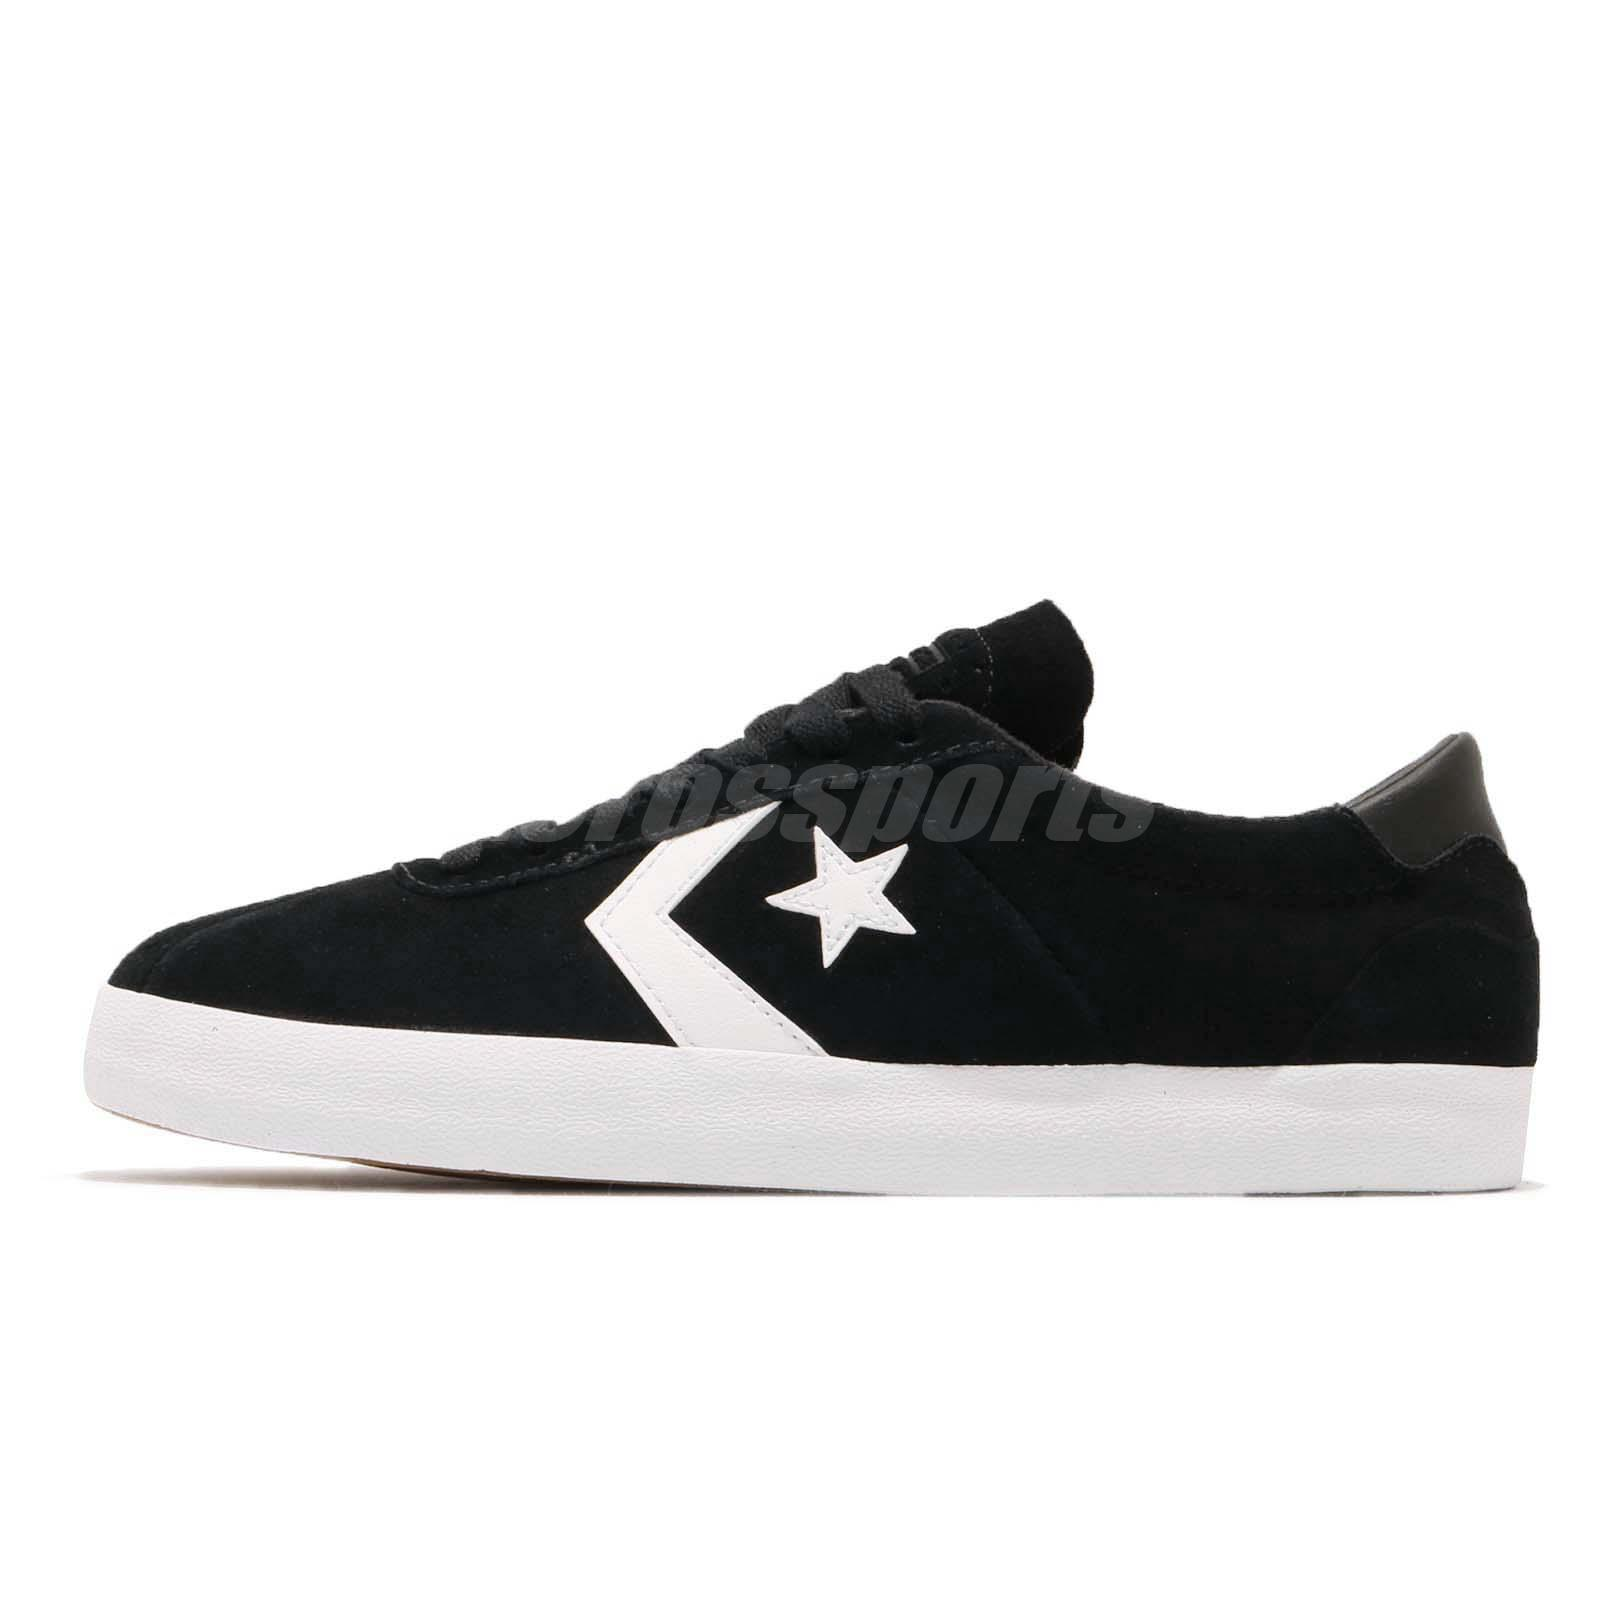 483db34a5162 Converse Breakpoint Pro Low Black White Suede Men Women Shoes Sneakers  159577C